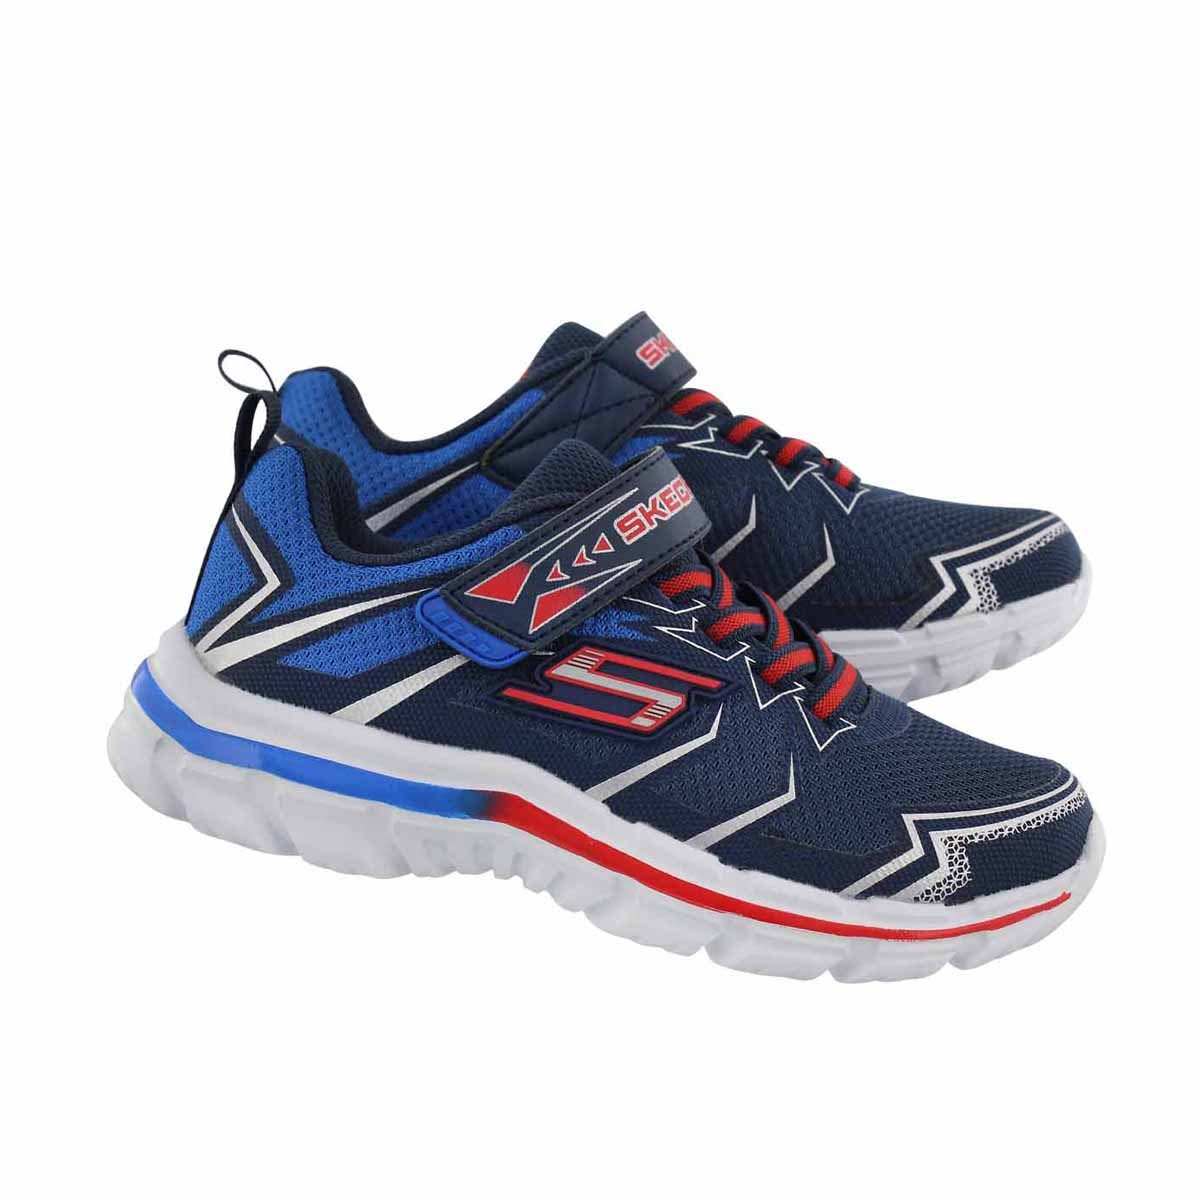 Bys Nitrate Ion Blast navy/ red sneaker